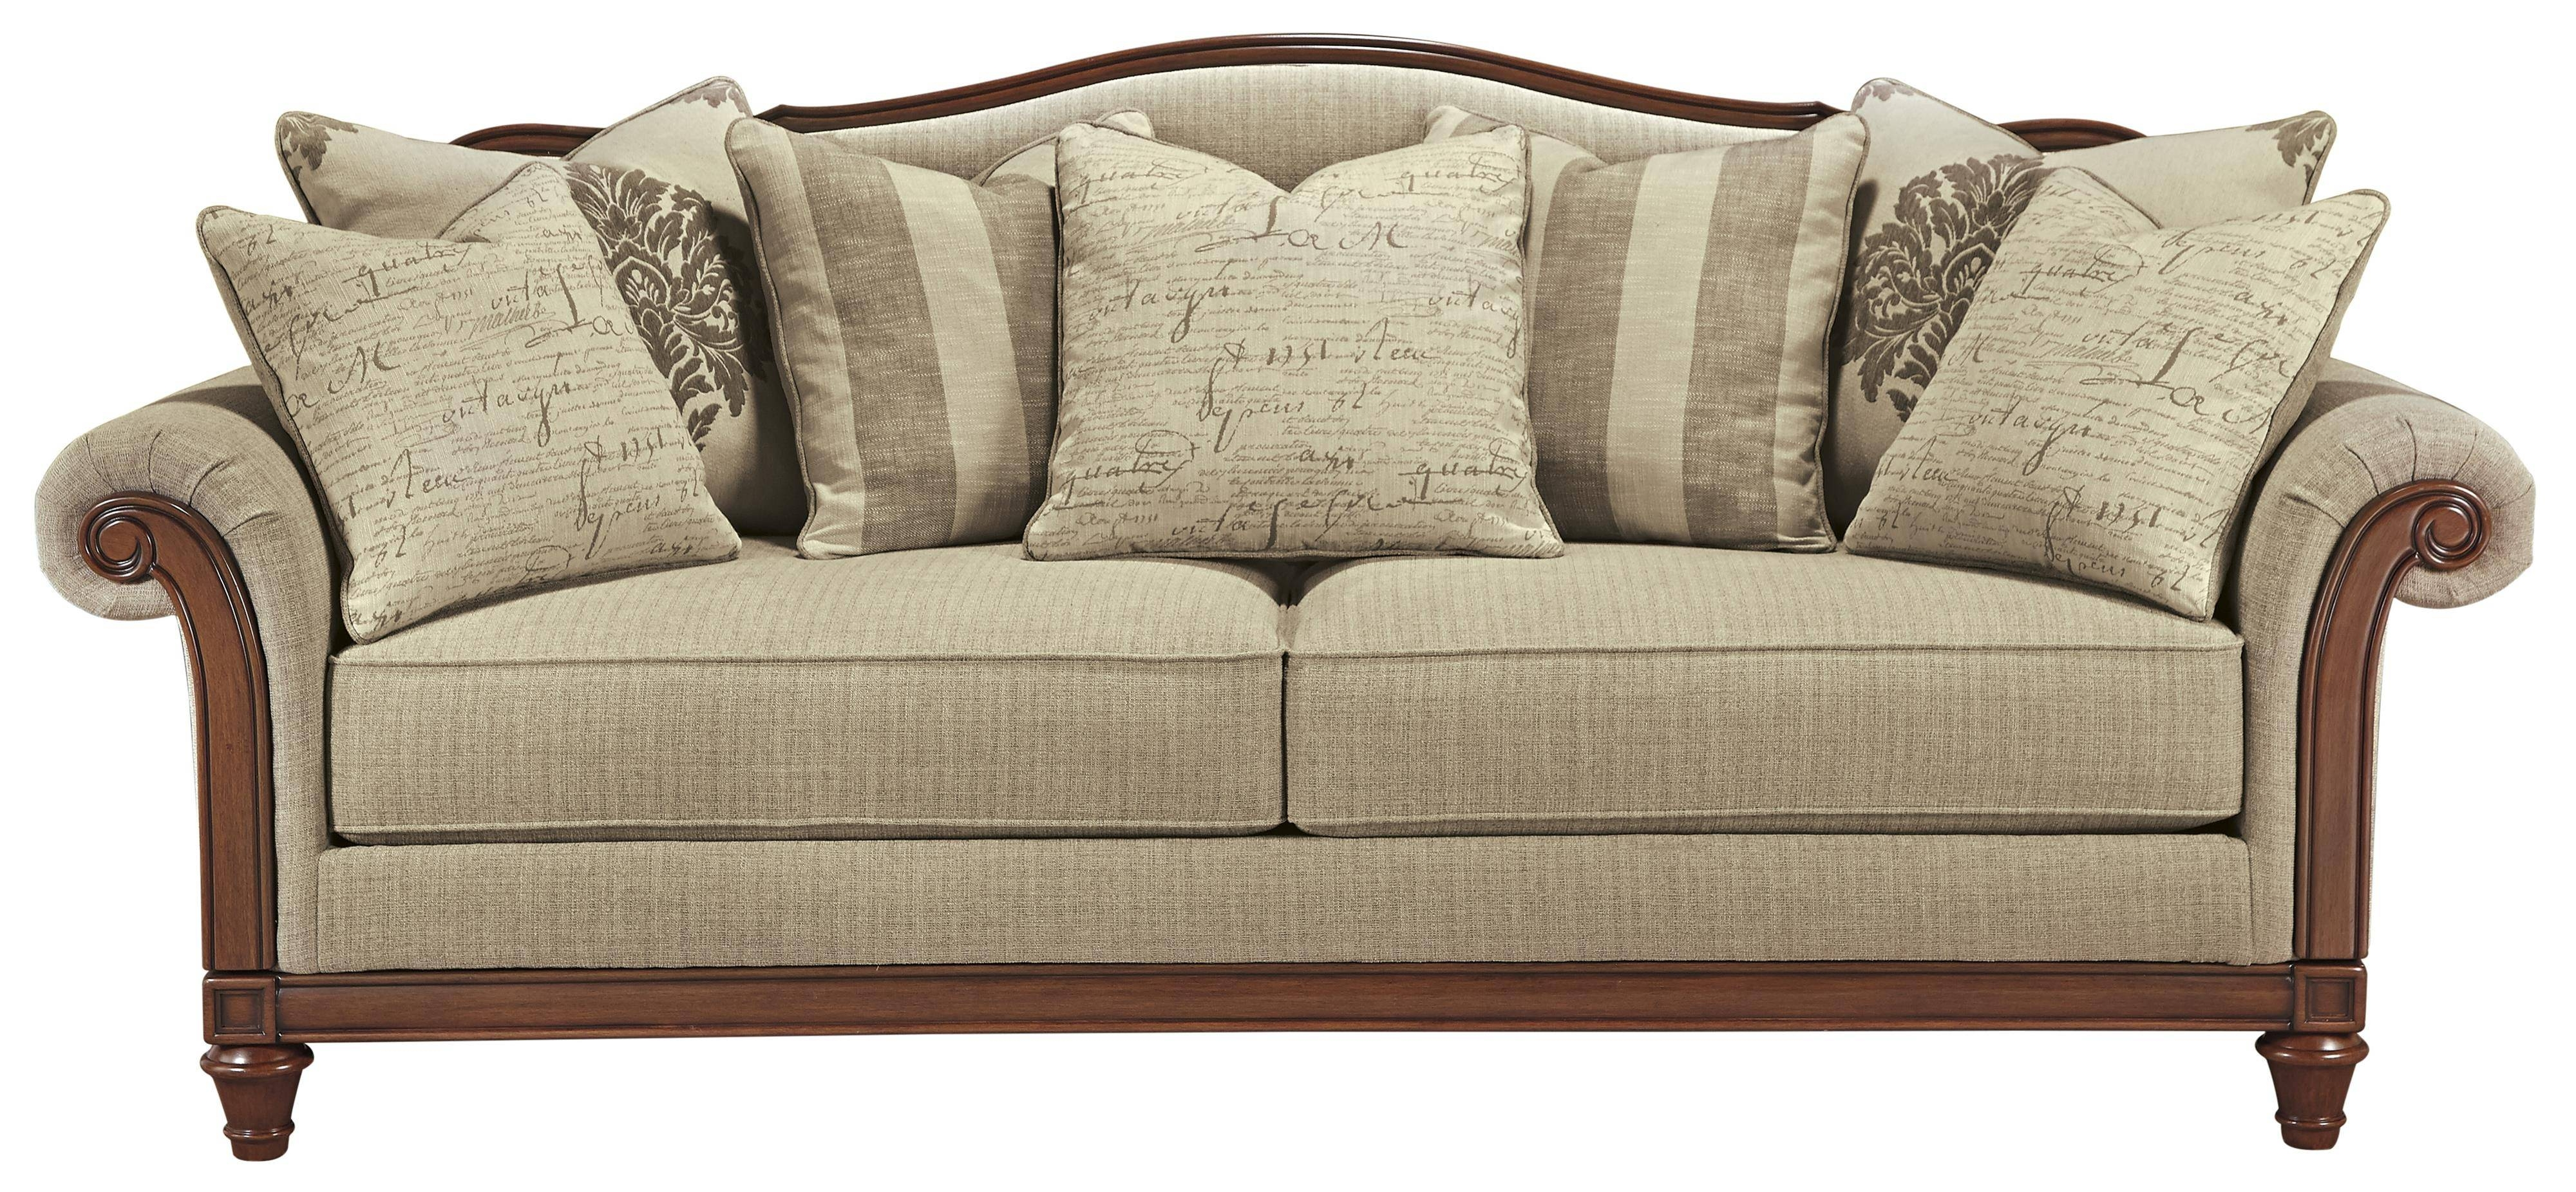 Signature Designashley Berwyn View Transitional Sofa With for Camel Color Sofas (Image 14 of 15)